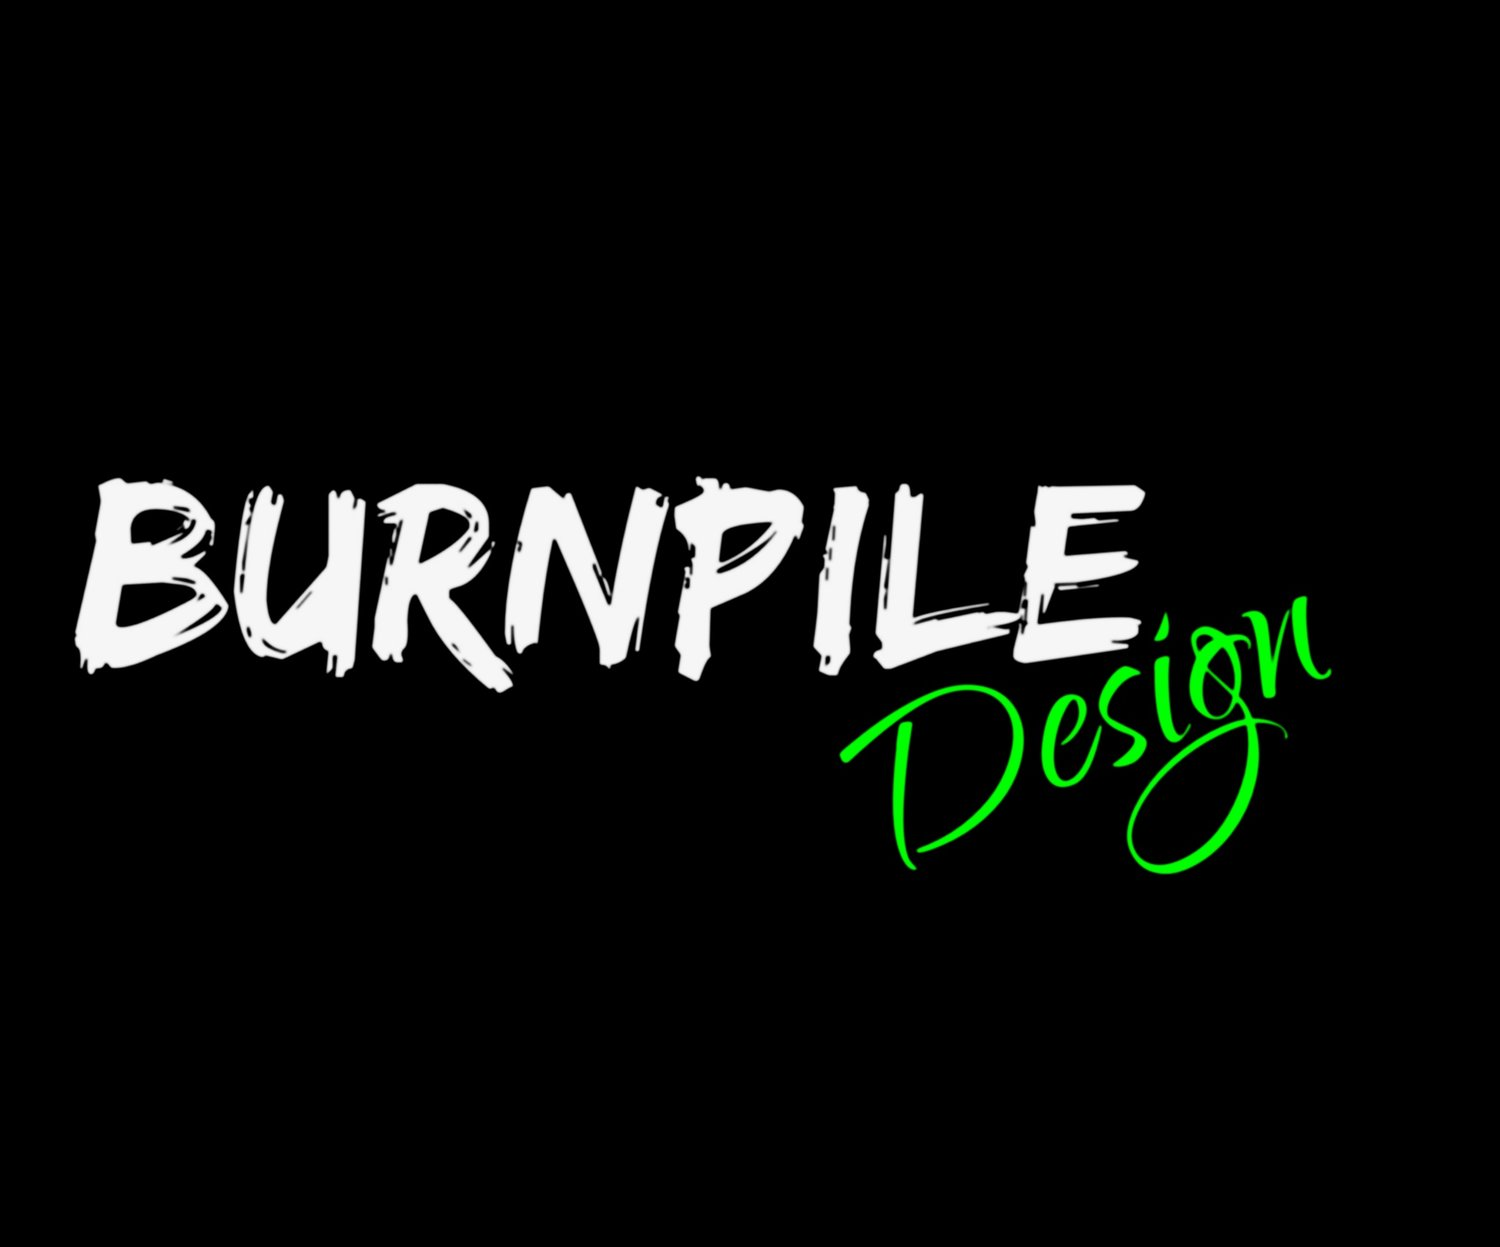 Burnpile Design